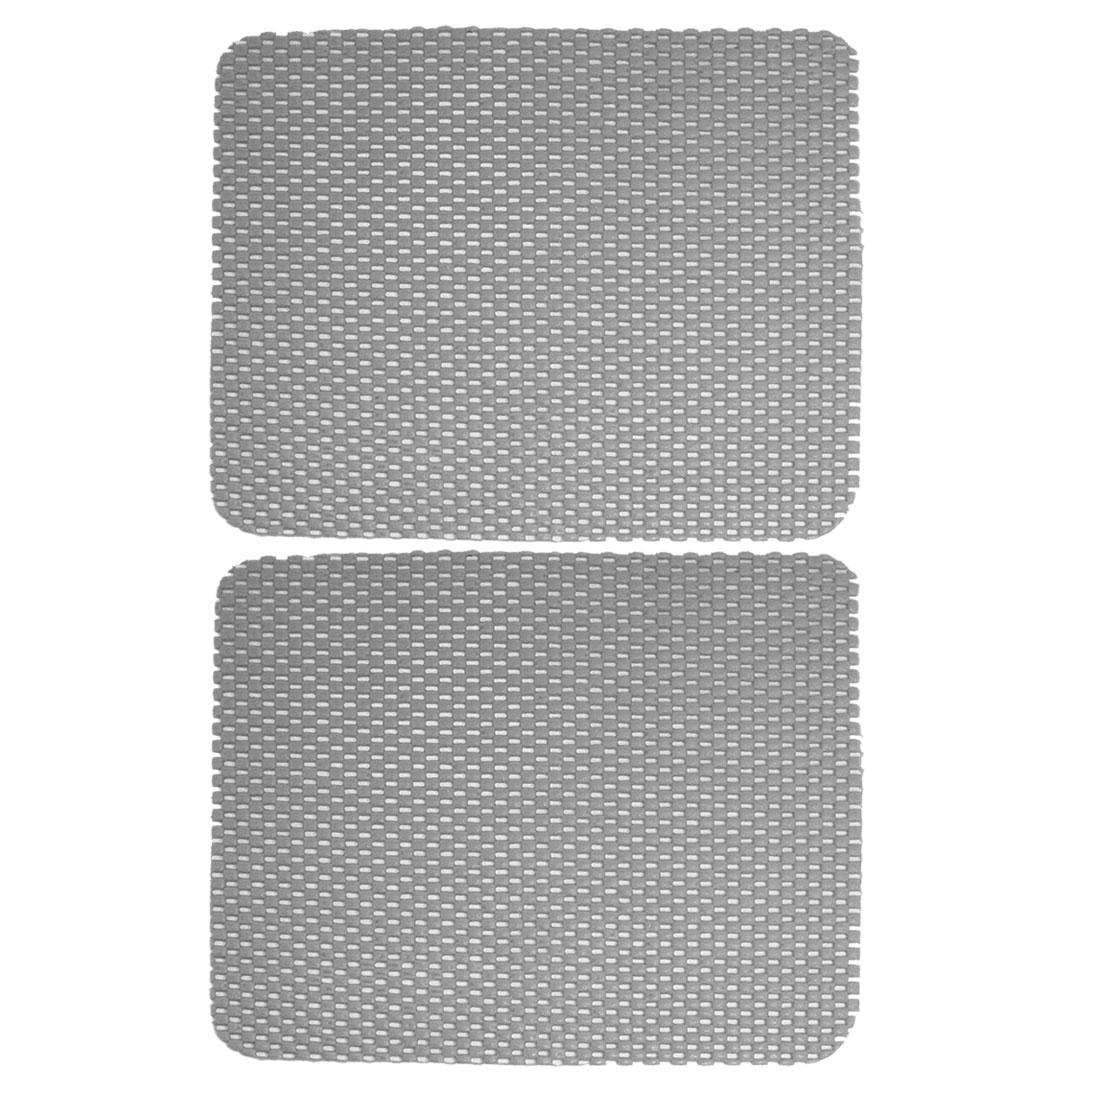 2 Pcs Gray Woven Pattern Car Dashboard Phone Holder Nonslip Mat Pad